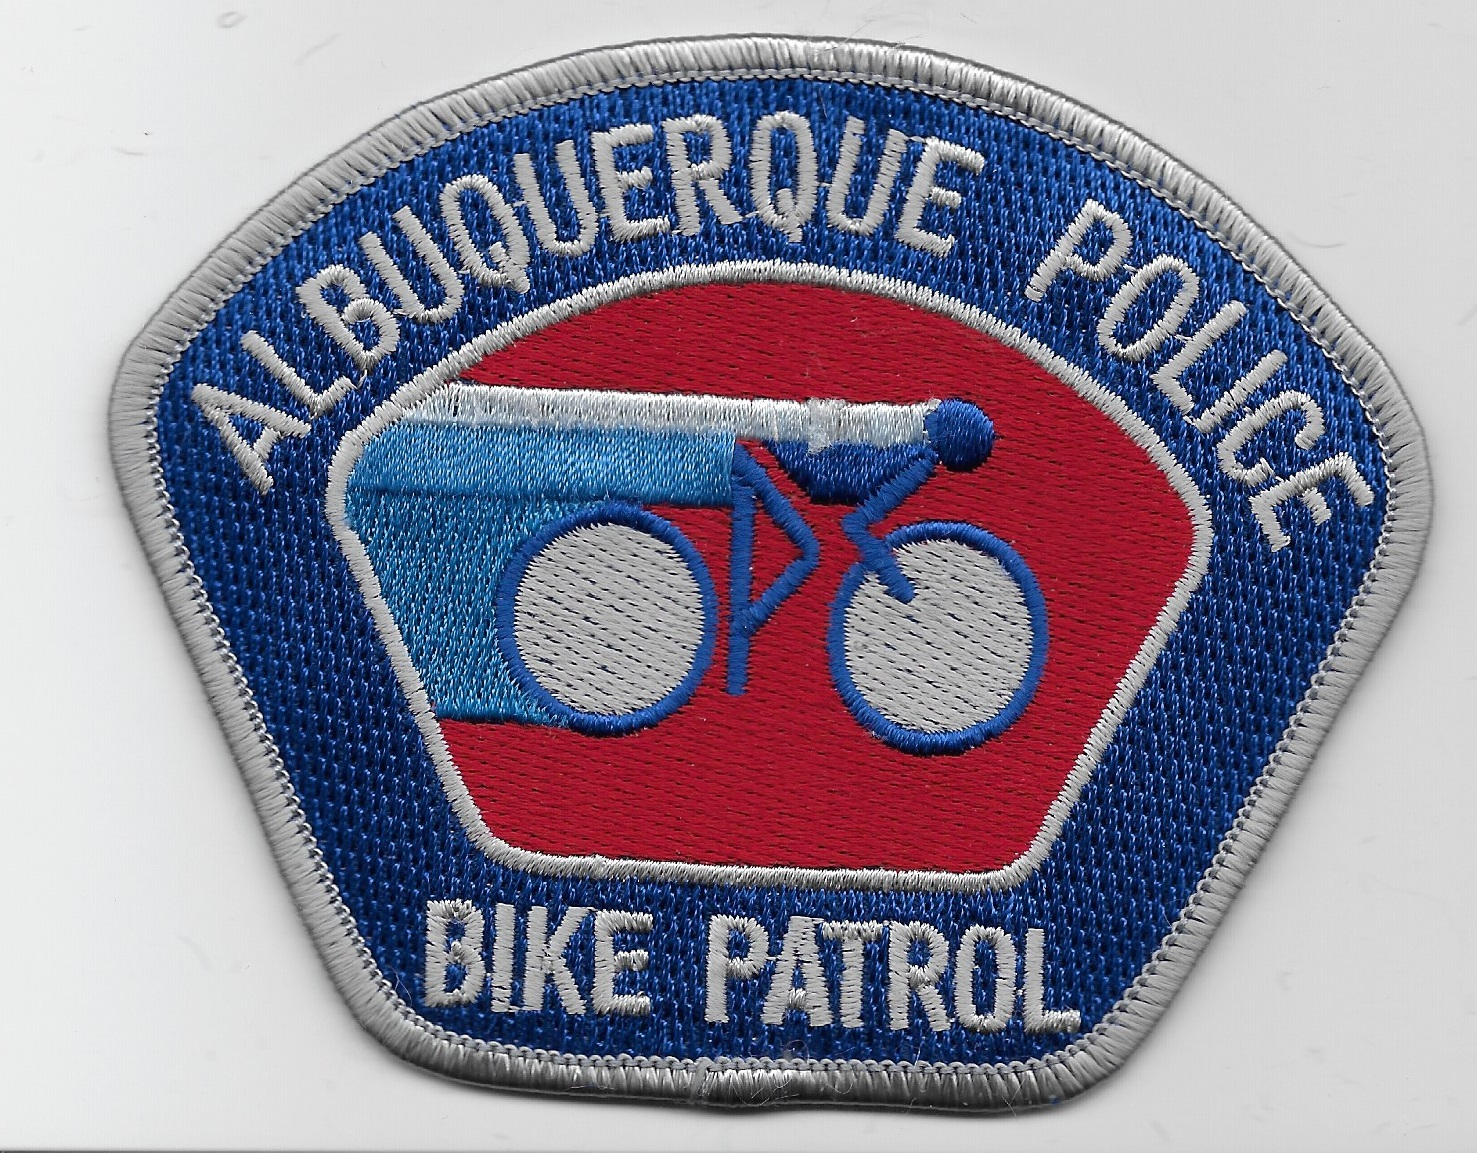 Albuquerque Police Bike Silver NM